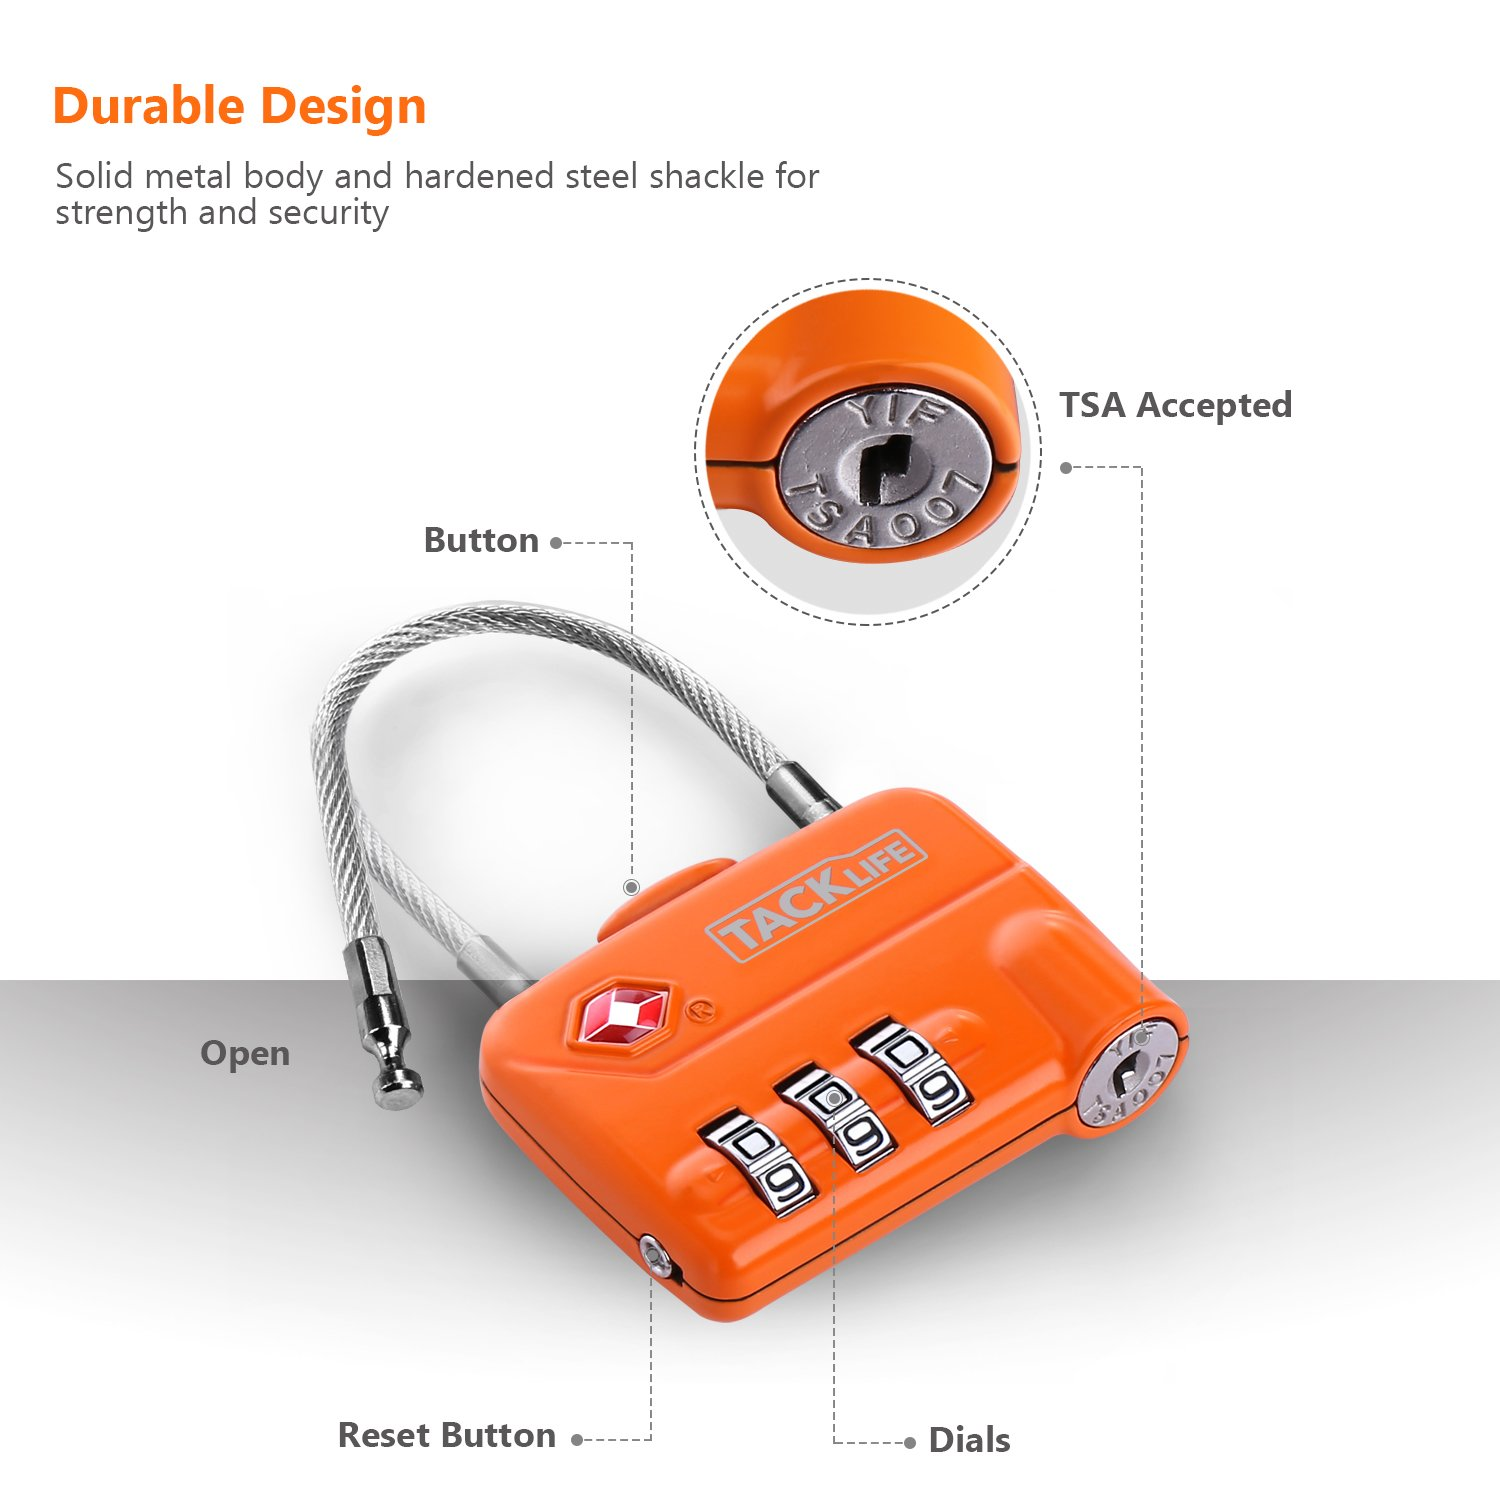 Luggage Locks, TACKLIFE HCL1A Cable Locks, TSA Approved Travel Locks, Flexible Locks, 3Digit Combination Locks for Gym, School, Locker, Outdoor, Fence, Suitcase & Baggage - Orange by TACKLIFE (Image #3)